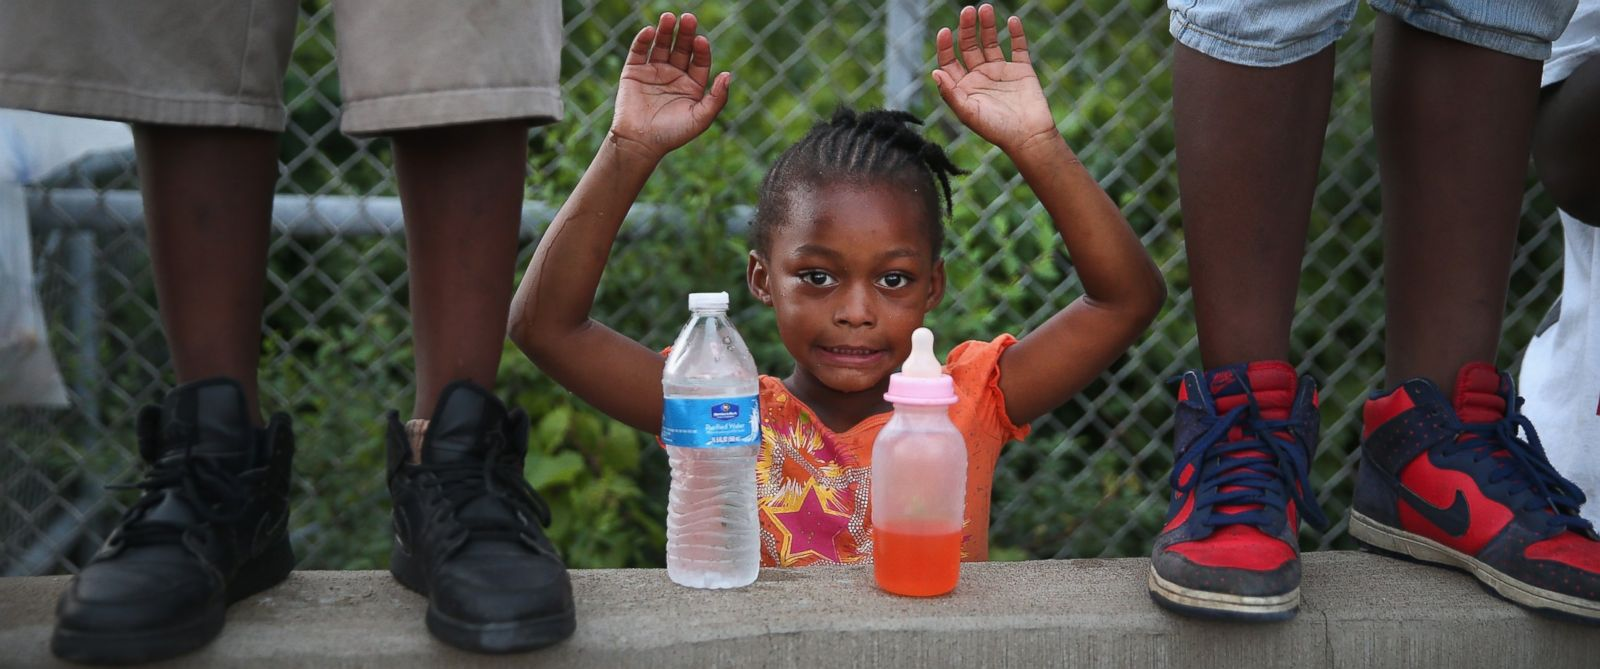 PHOTO: Gabrielle Walker, 5, protests the killing of Michael Brown on Aug. 17, 2014 in Ferguson, Mo.